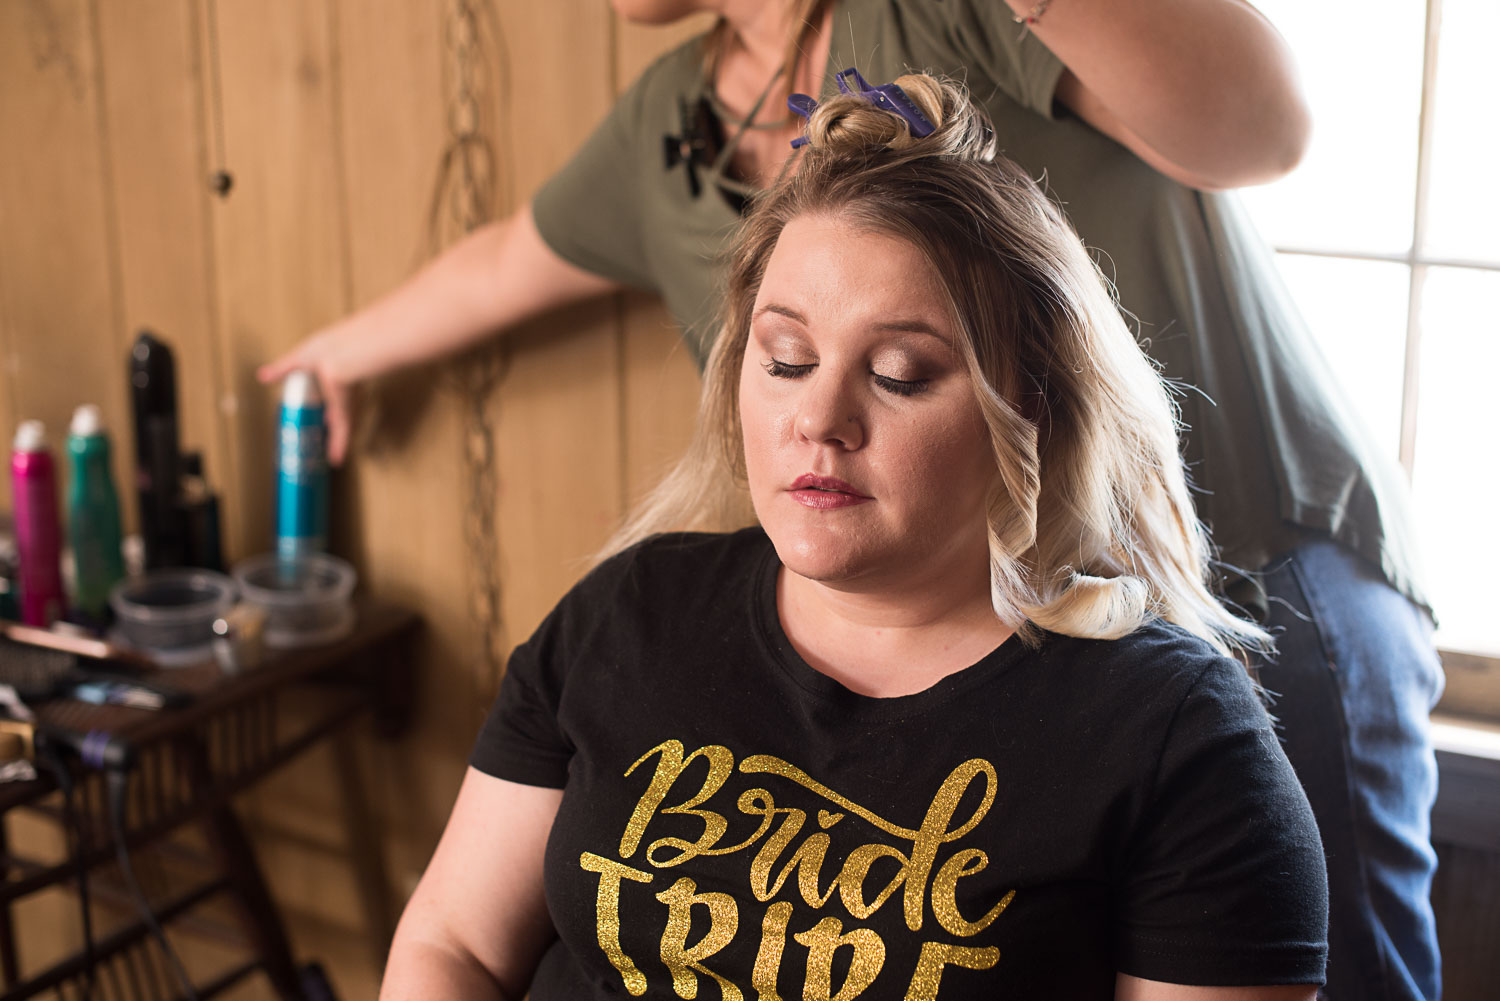 18 bridesmaid getting hair done by shelby dean.jpg